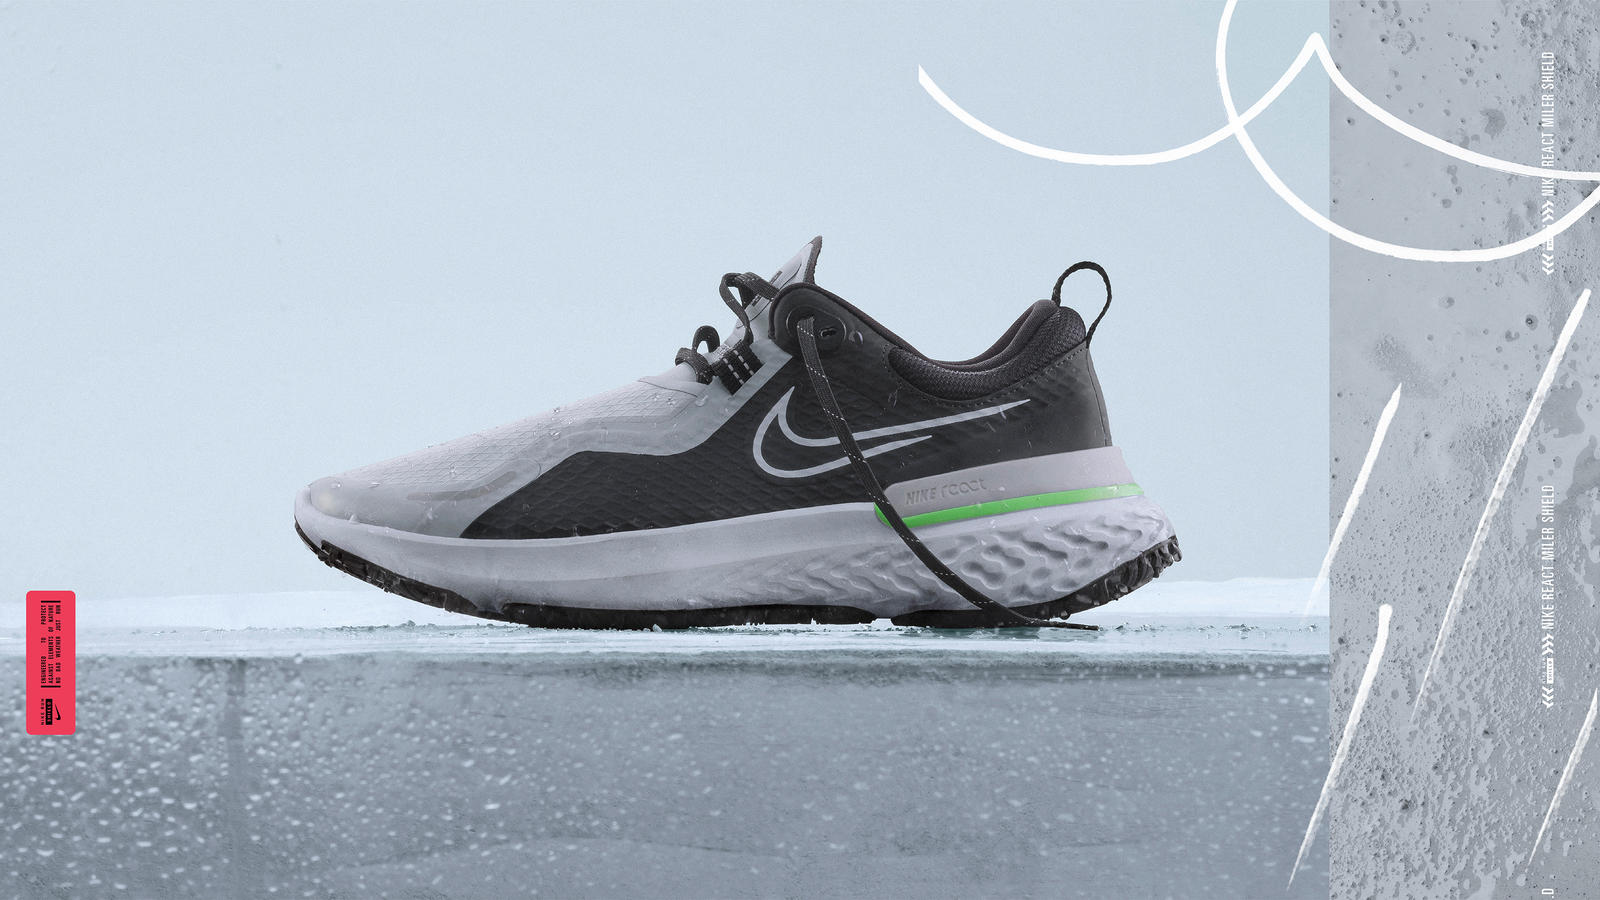 Nike Pegasus 37 Shield Nike Pegasus Trail 2 GORE-TEX Nike React Miler Shield Official Images Release Date 5